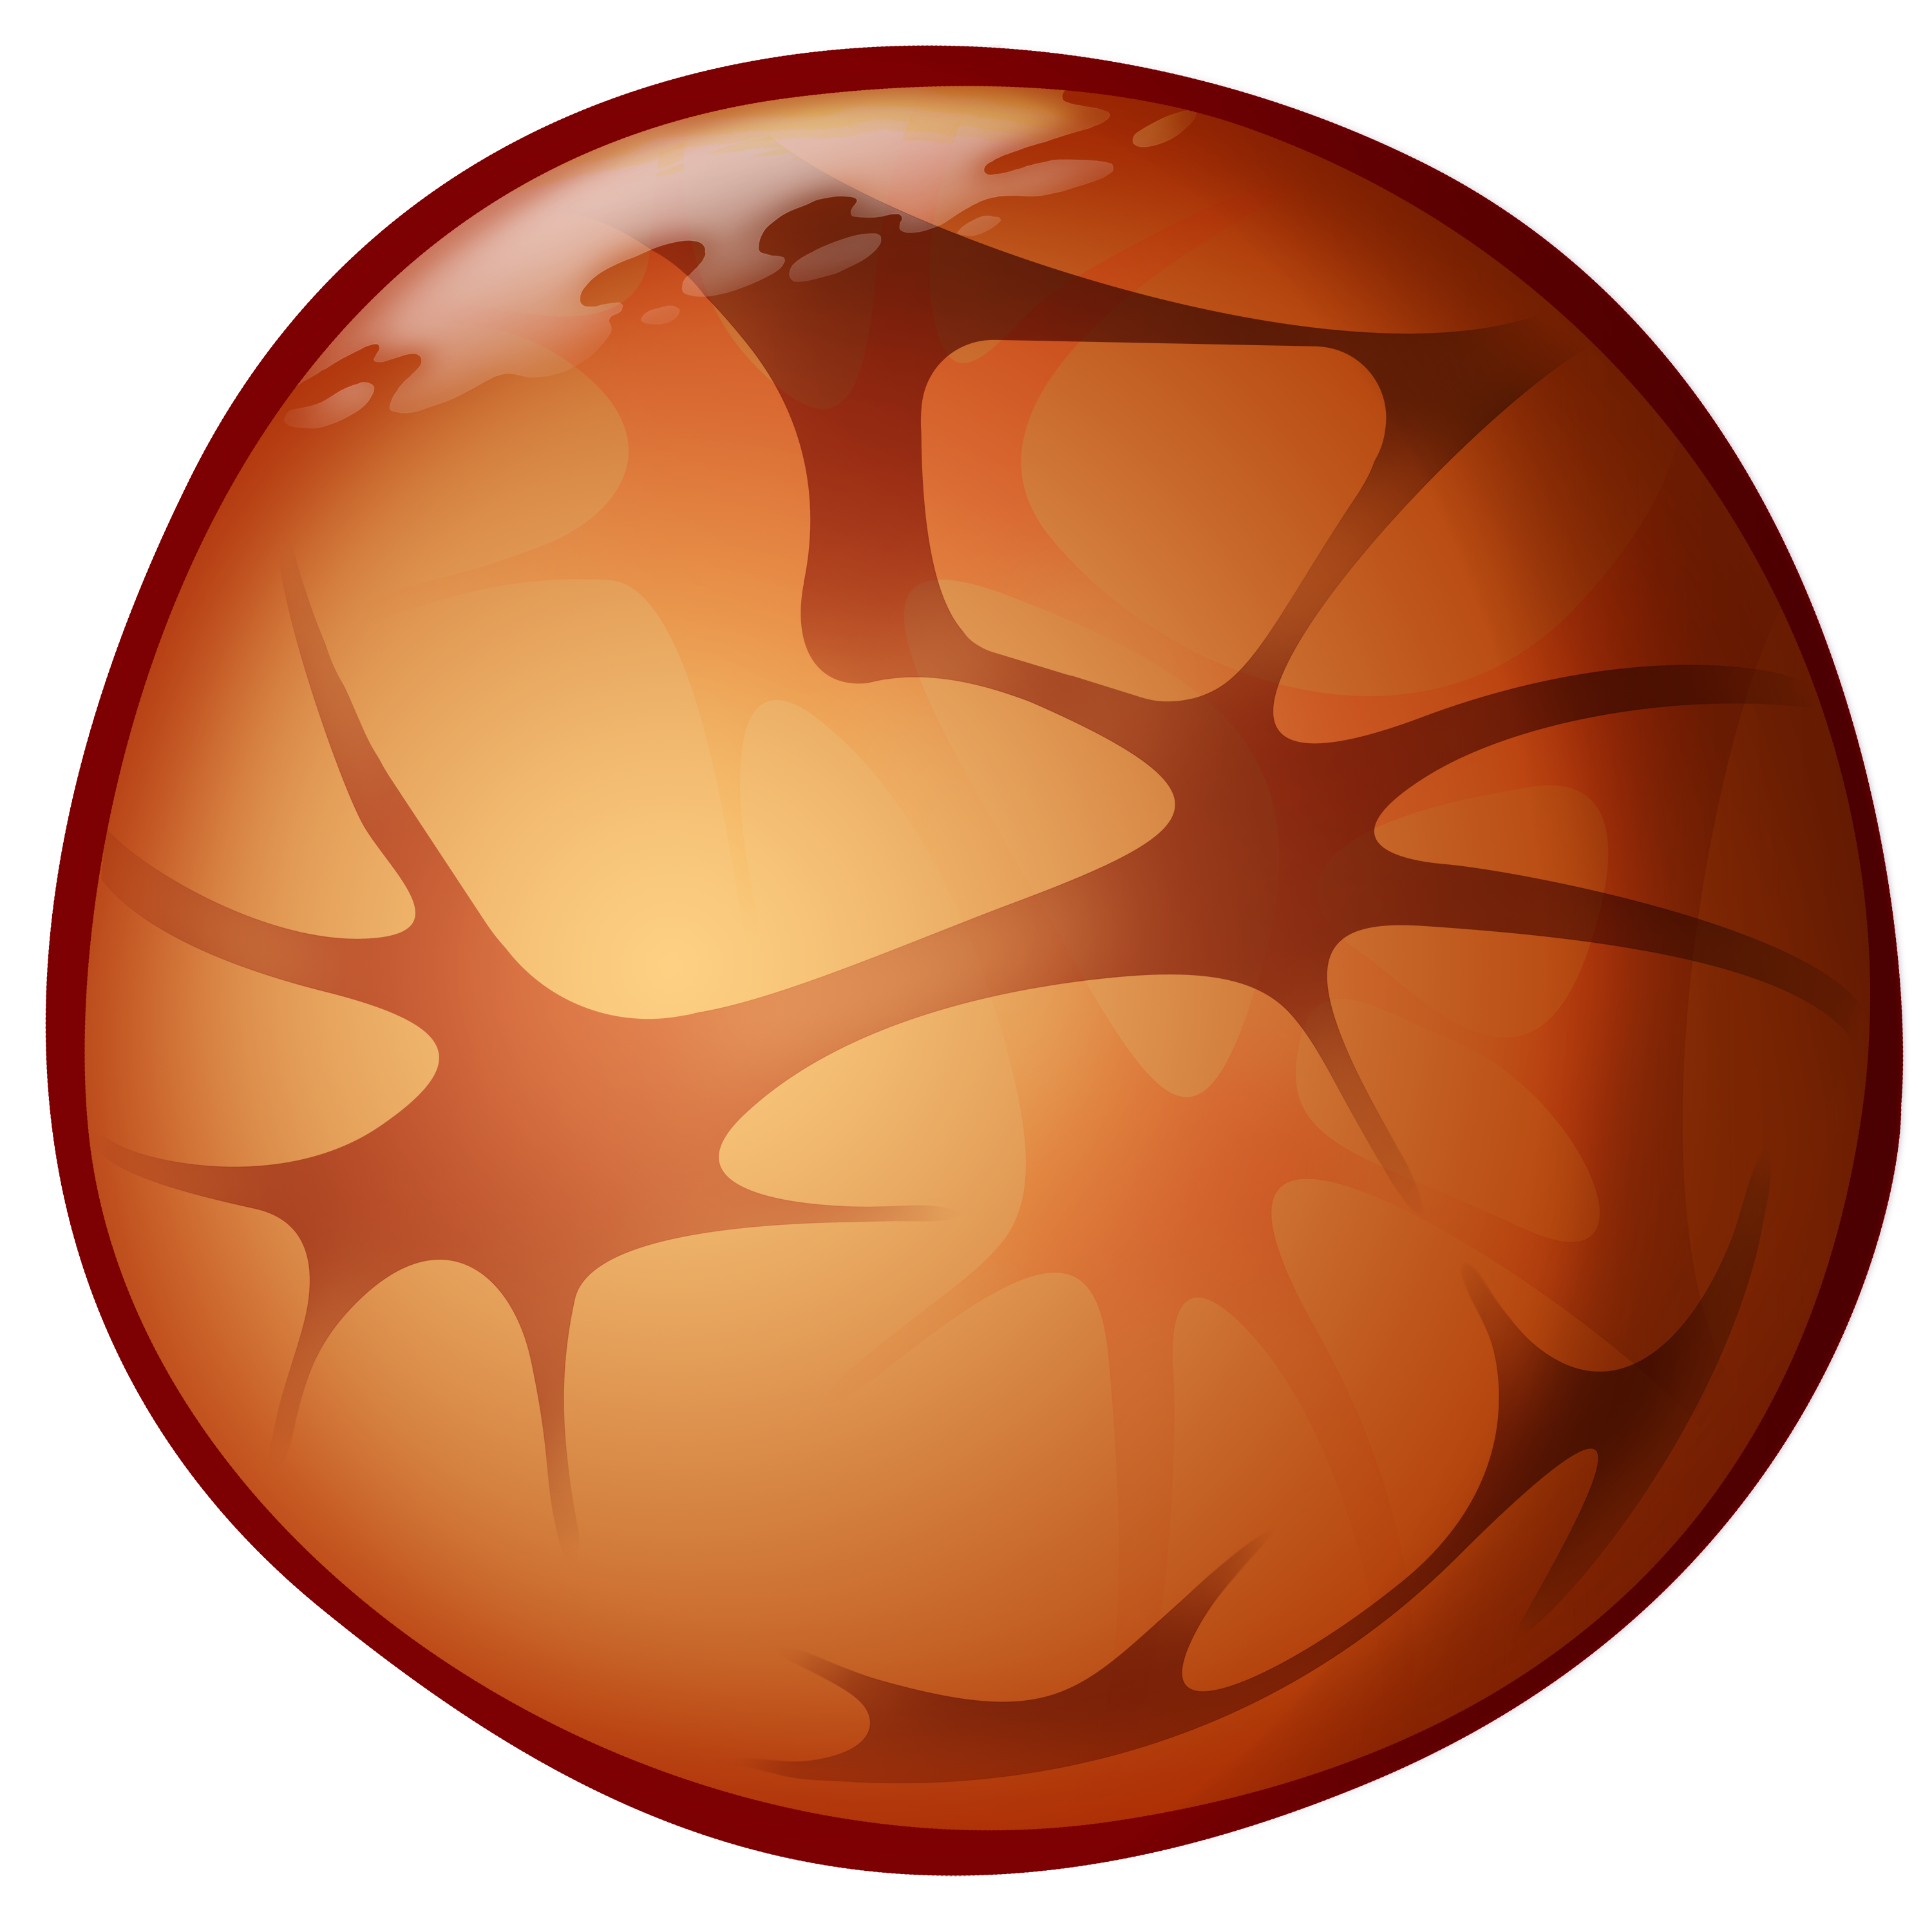 Mars png vbs galactic. Planeten clipart starveyors